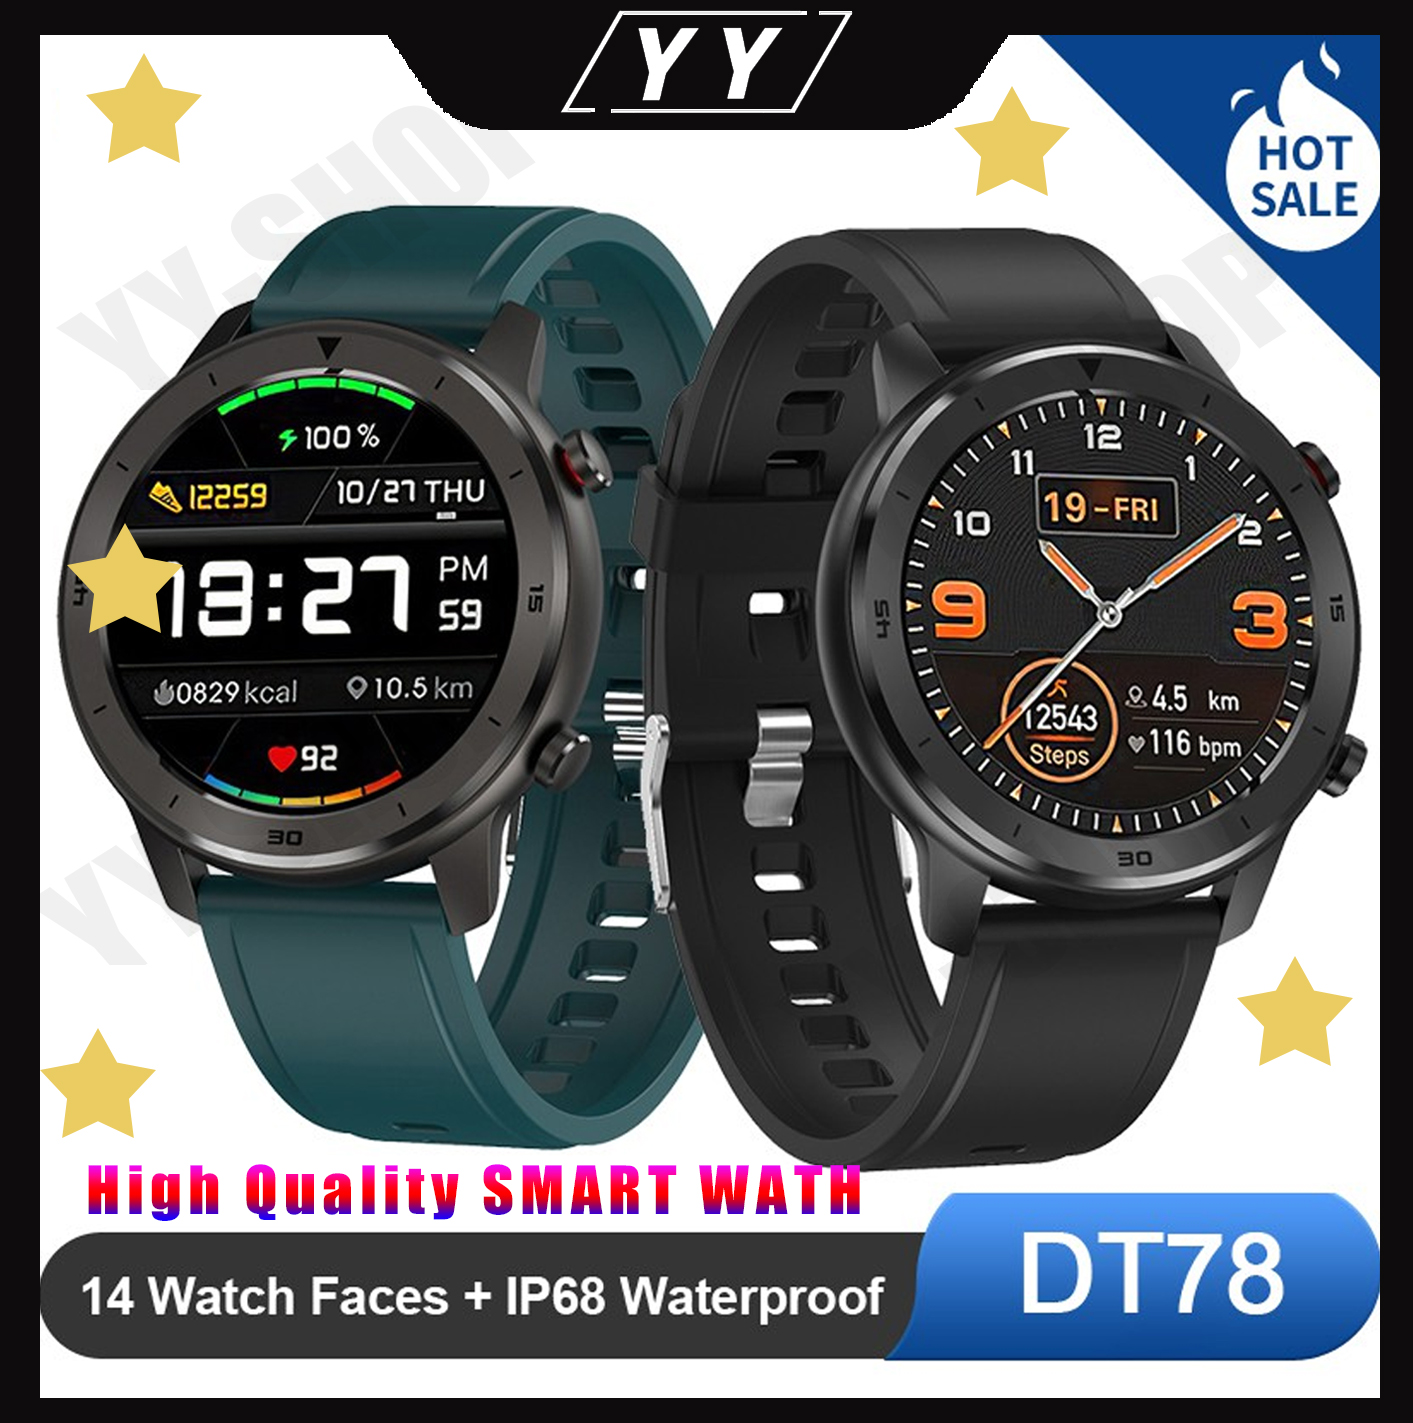 YY <font><b>SmartWatch</b></font> <font><b>NO</b></font>.<font><b>1</b></font> DT78 Smart Watch IP68 Waterproof Heart rate Running call reminder <font><b>dt</b></font> 78 blood pressure bluetooth women image